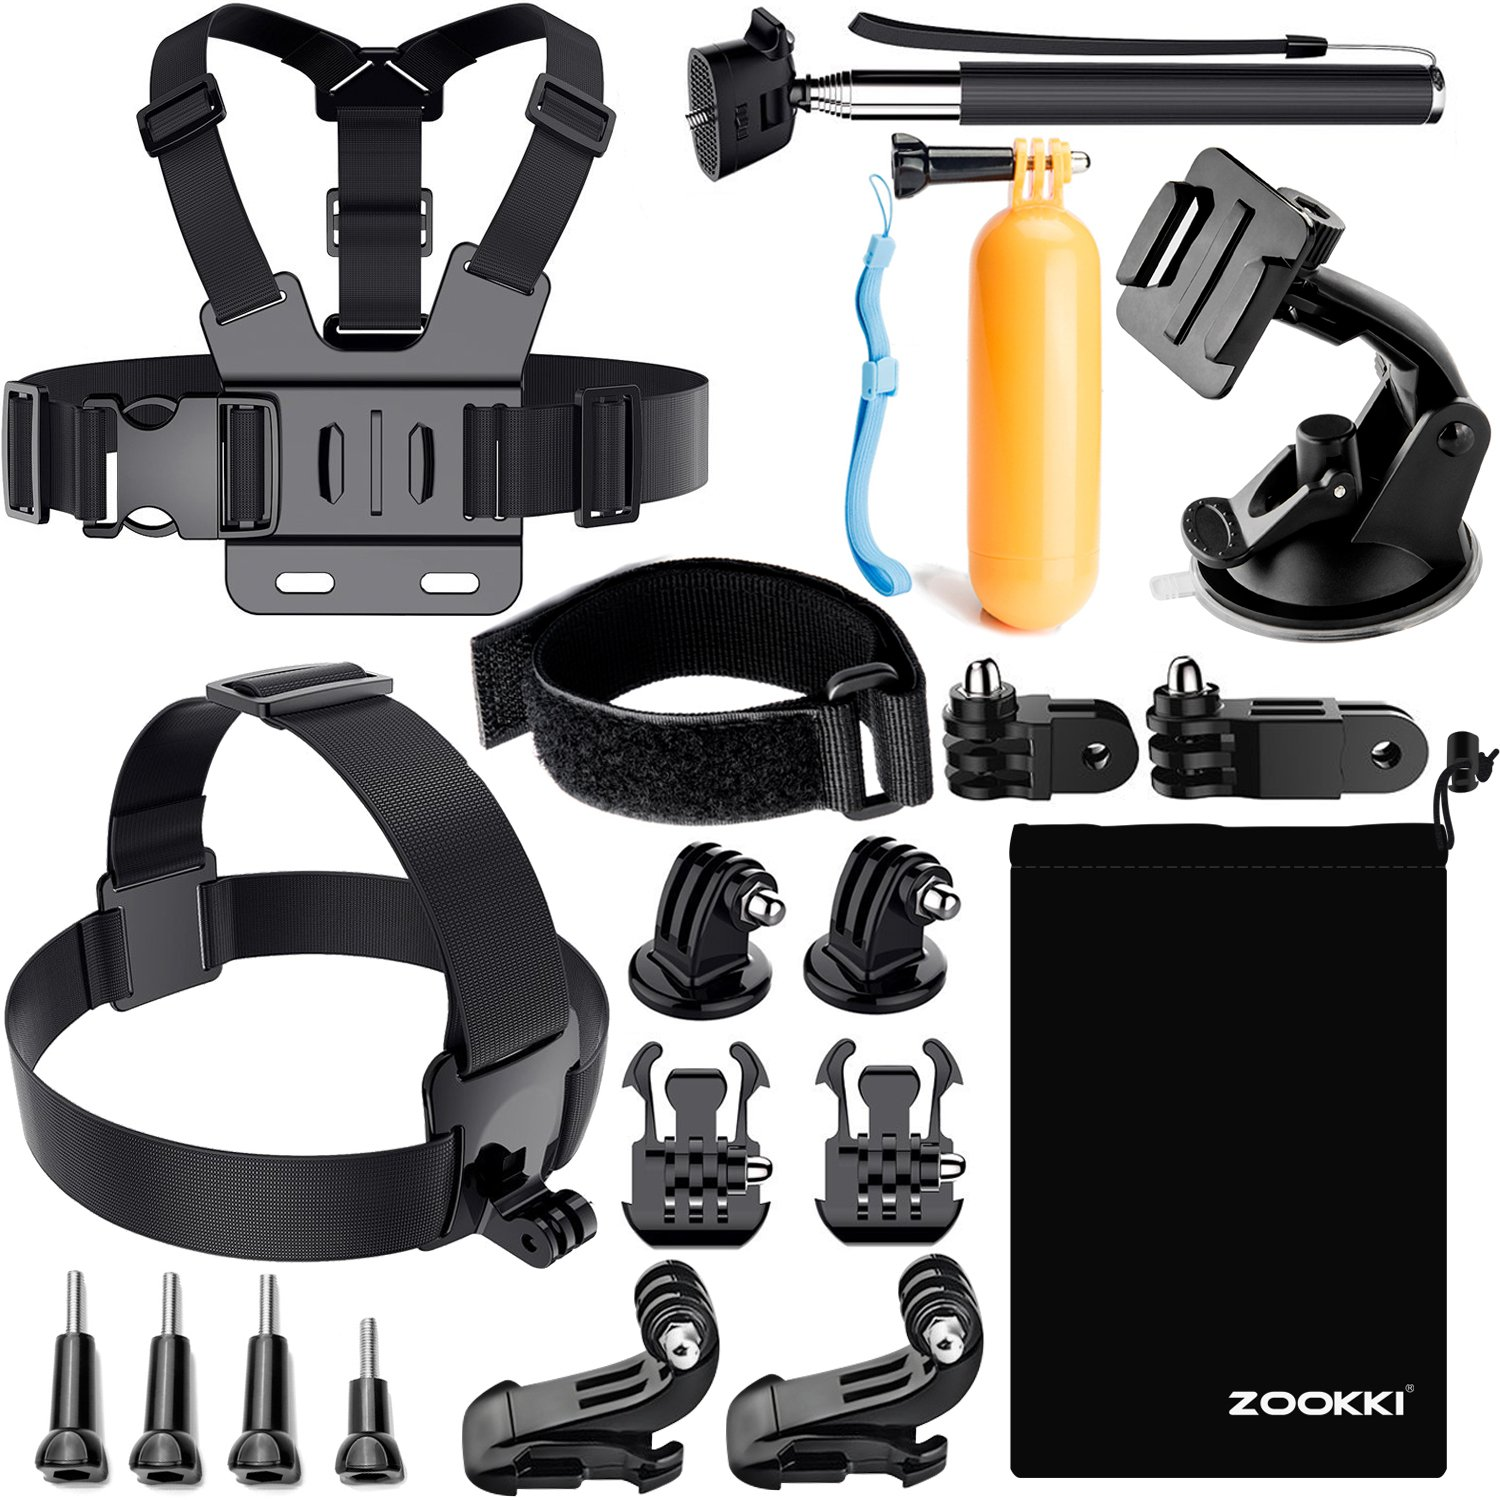 Zookki Accessories Kit for GoPro 6 Hero 5 Session 4 Silver 3 Black SJ4000/SJ5000/SJ6 LEGEND/SJ7 Action Camera Accessories for Xiaomi Yi 4K/WiMiUS/Lightdow/DBPOWER by ZOOKKI